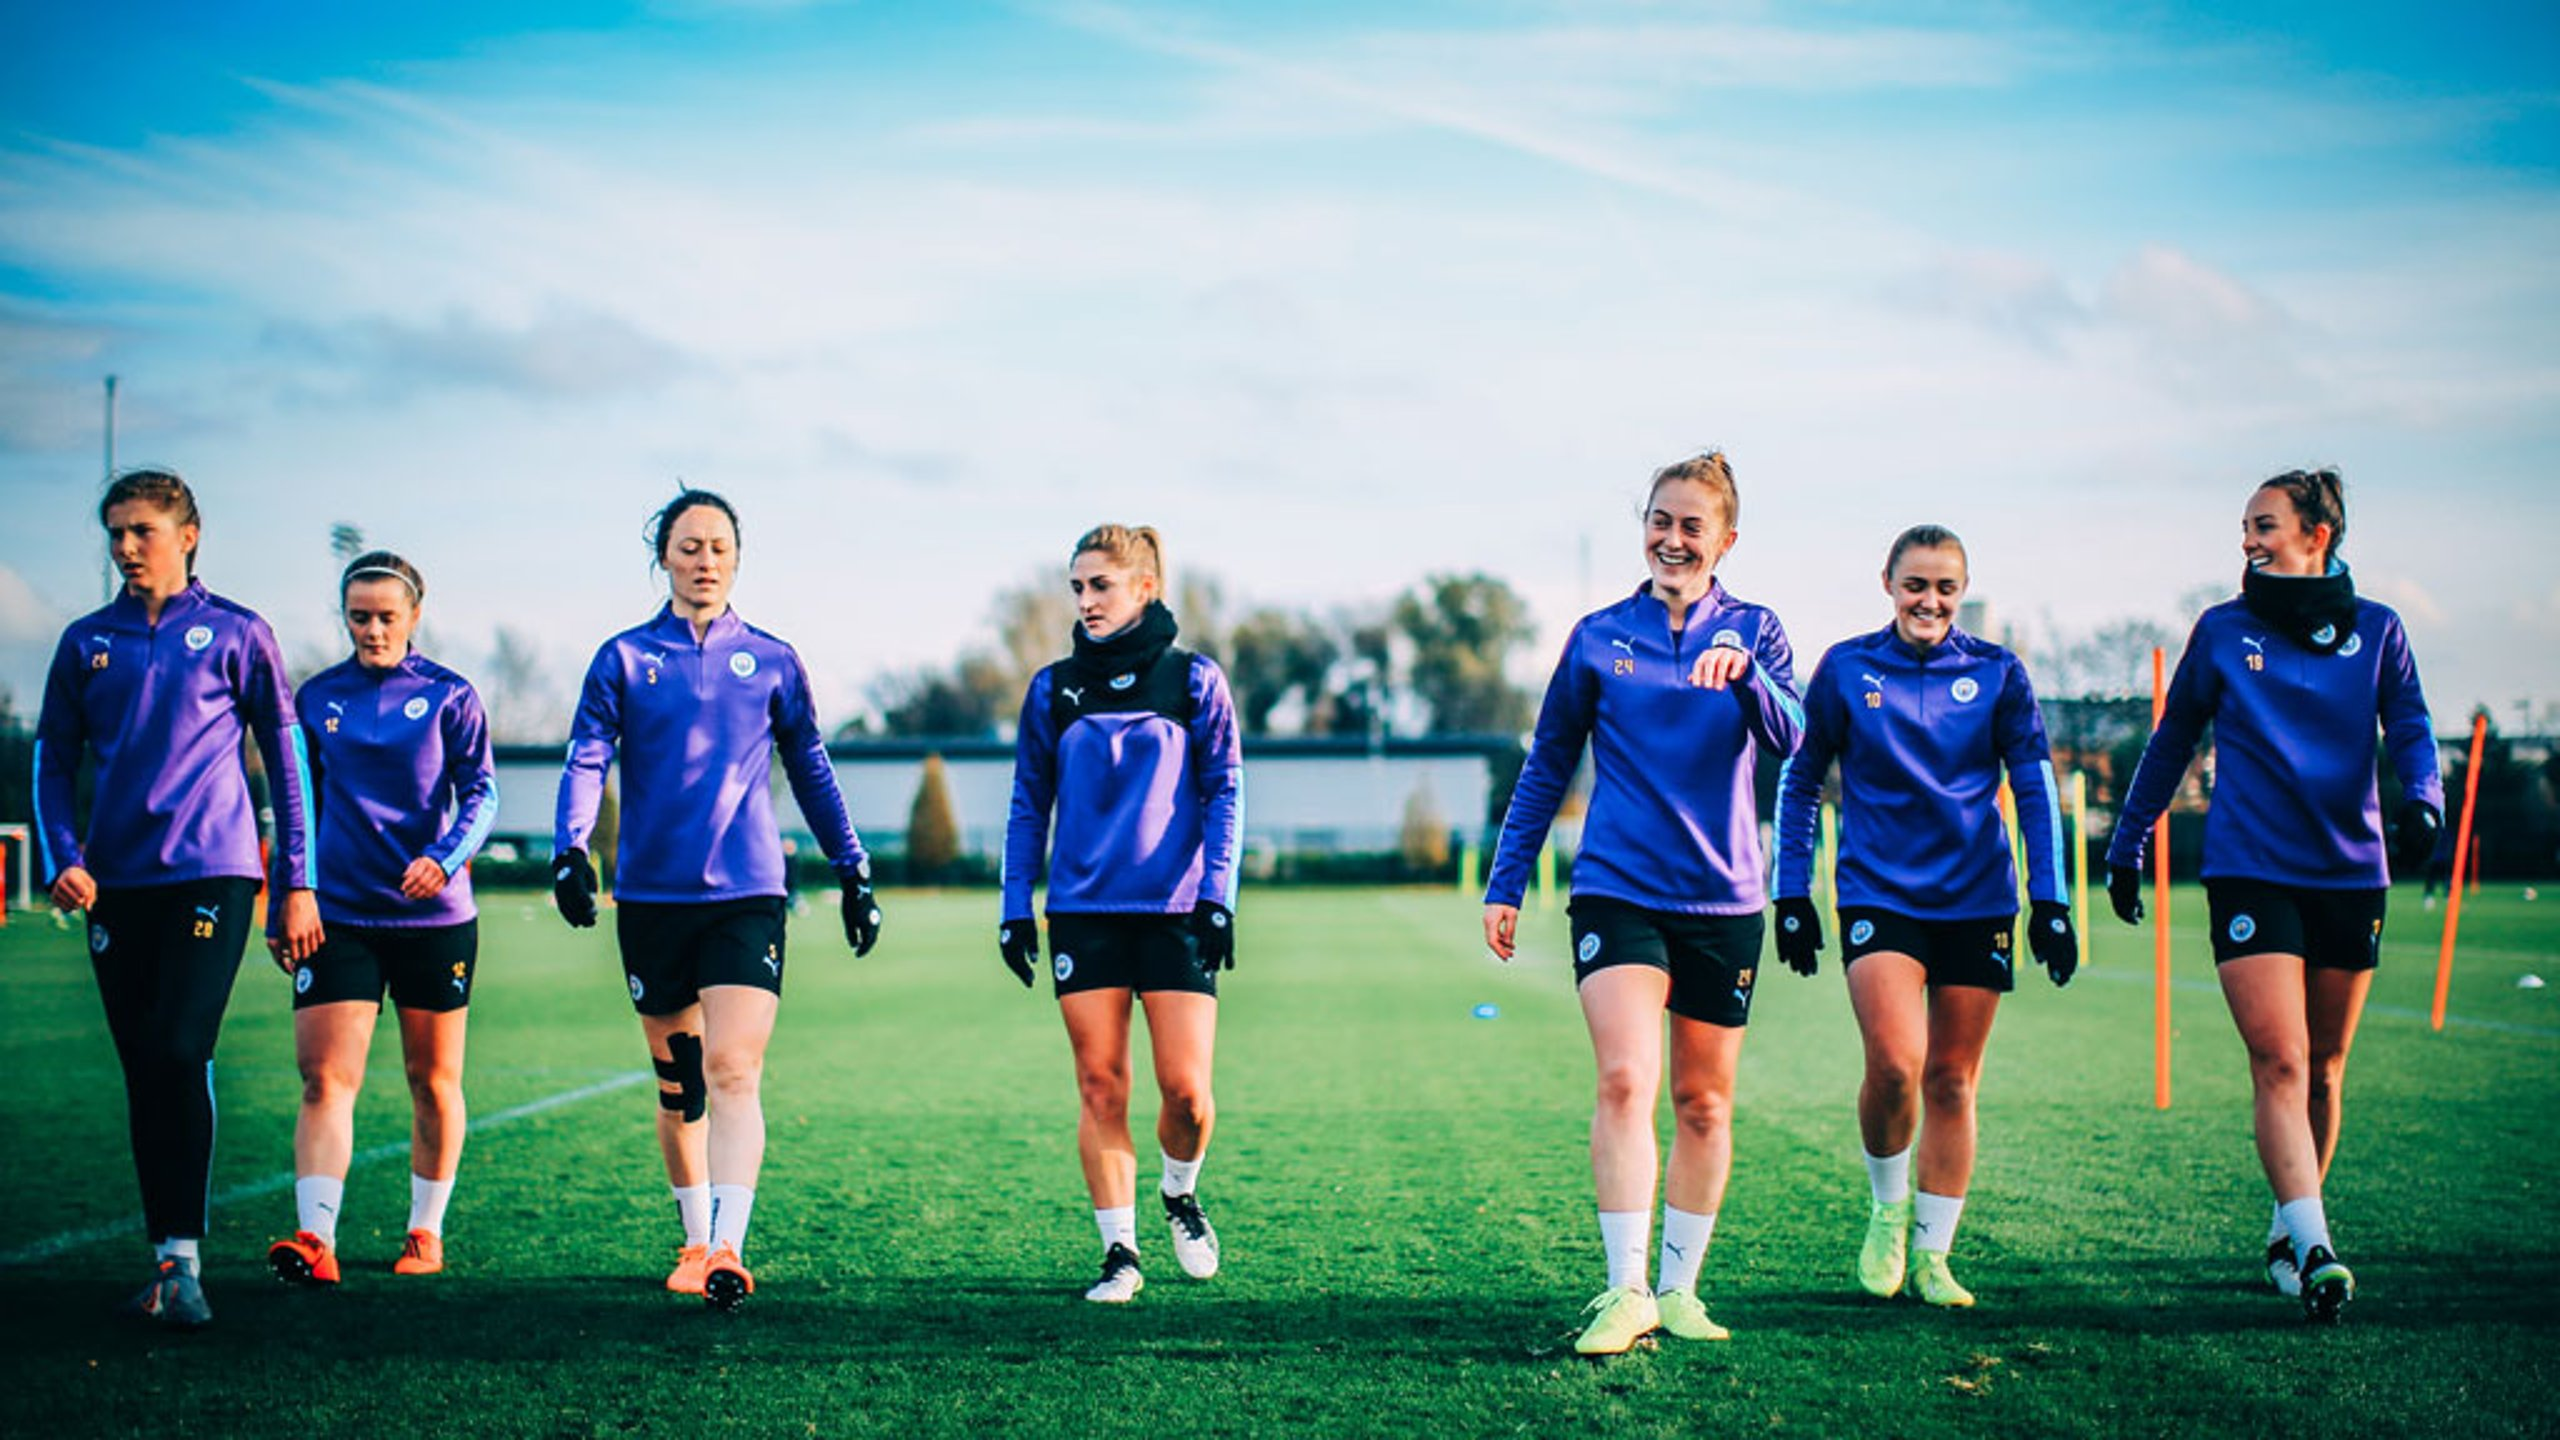 SQUAD GOALS: The City players are focused on Thursday's key Continental Cup trip to take on Everton